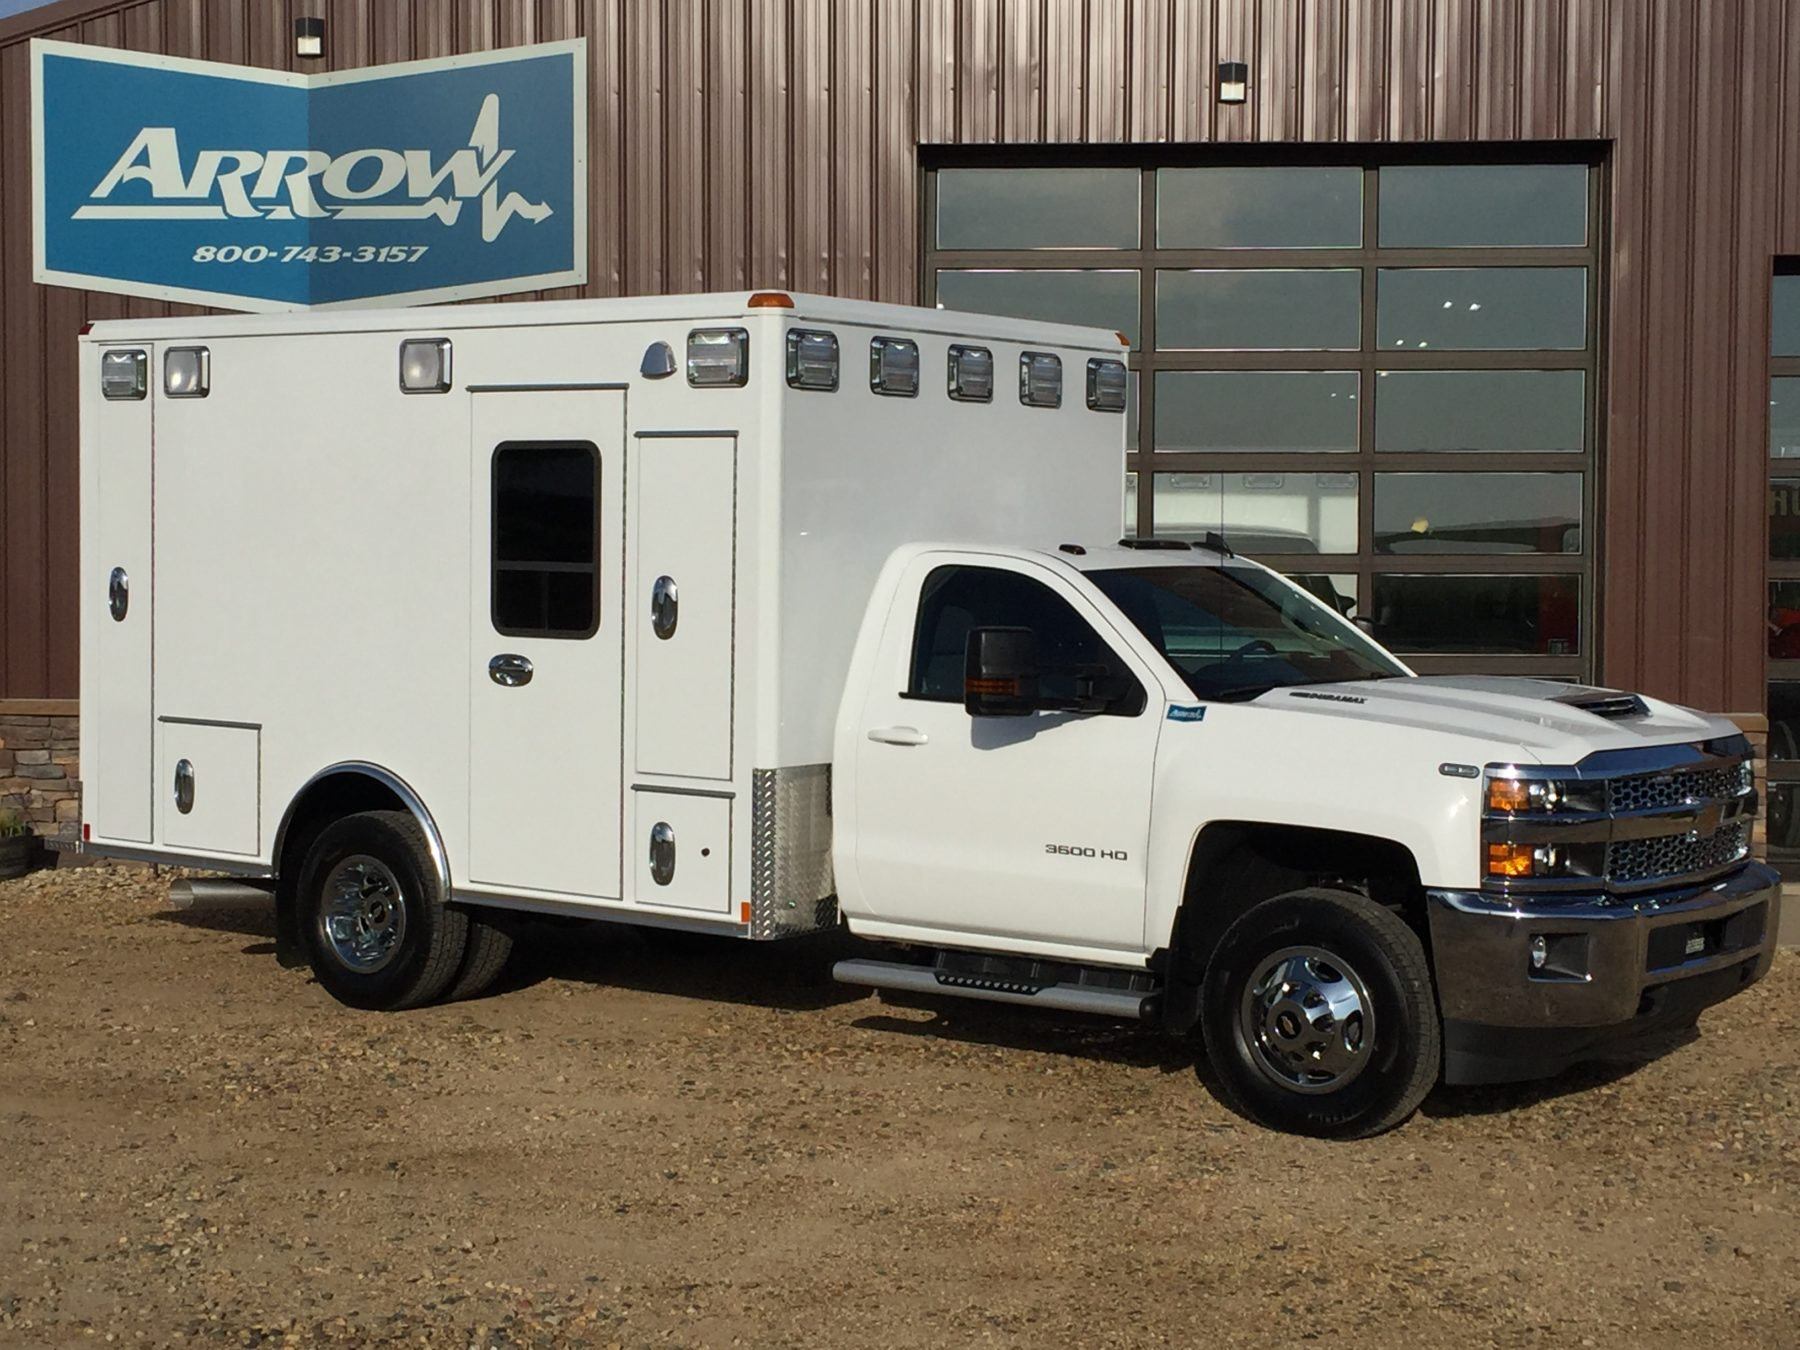 2019 Chevrolet K3500 4x4 Type 1 Ambulance For Sale – Picture 3